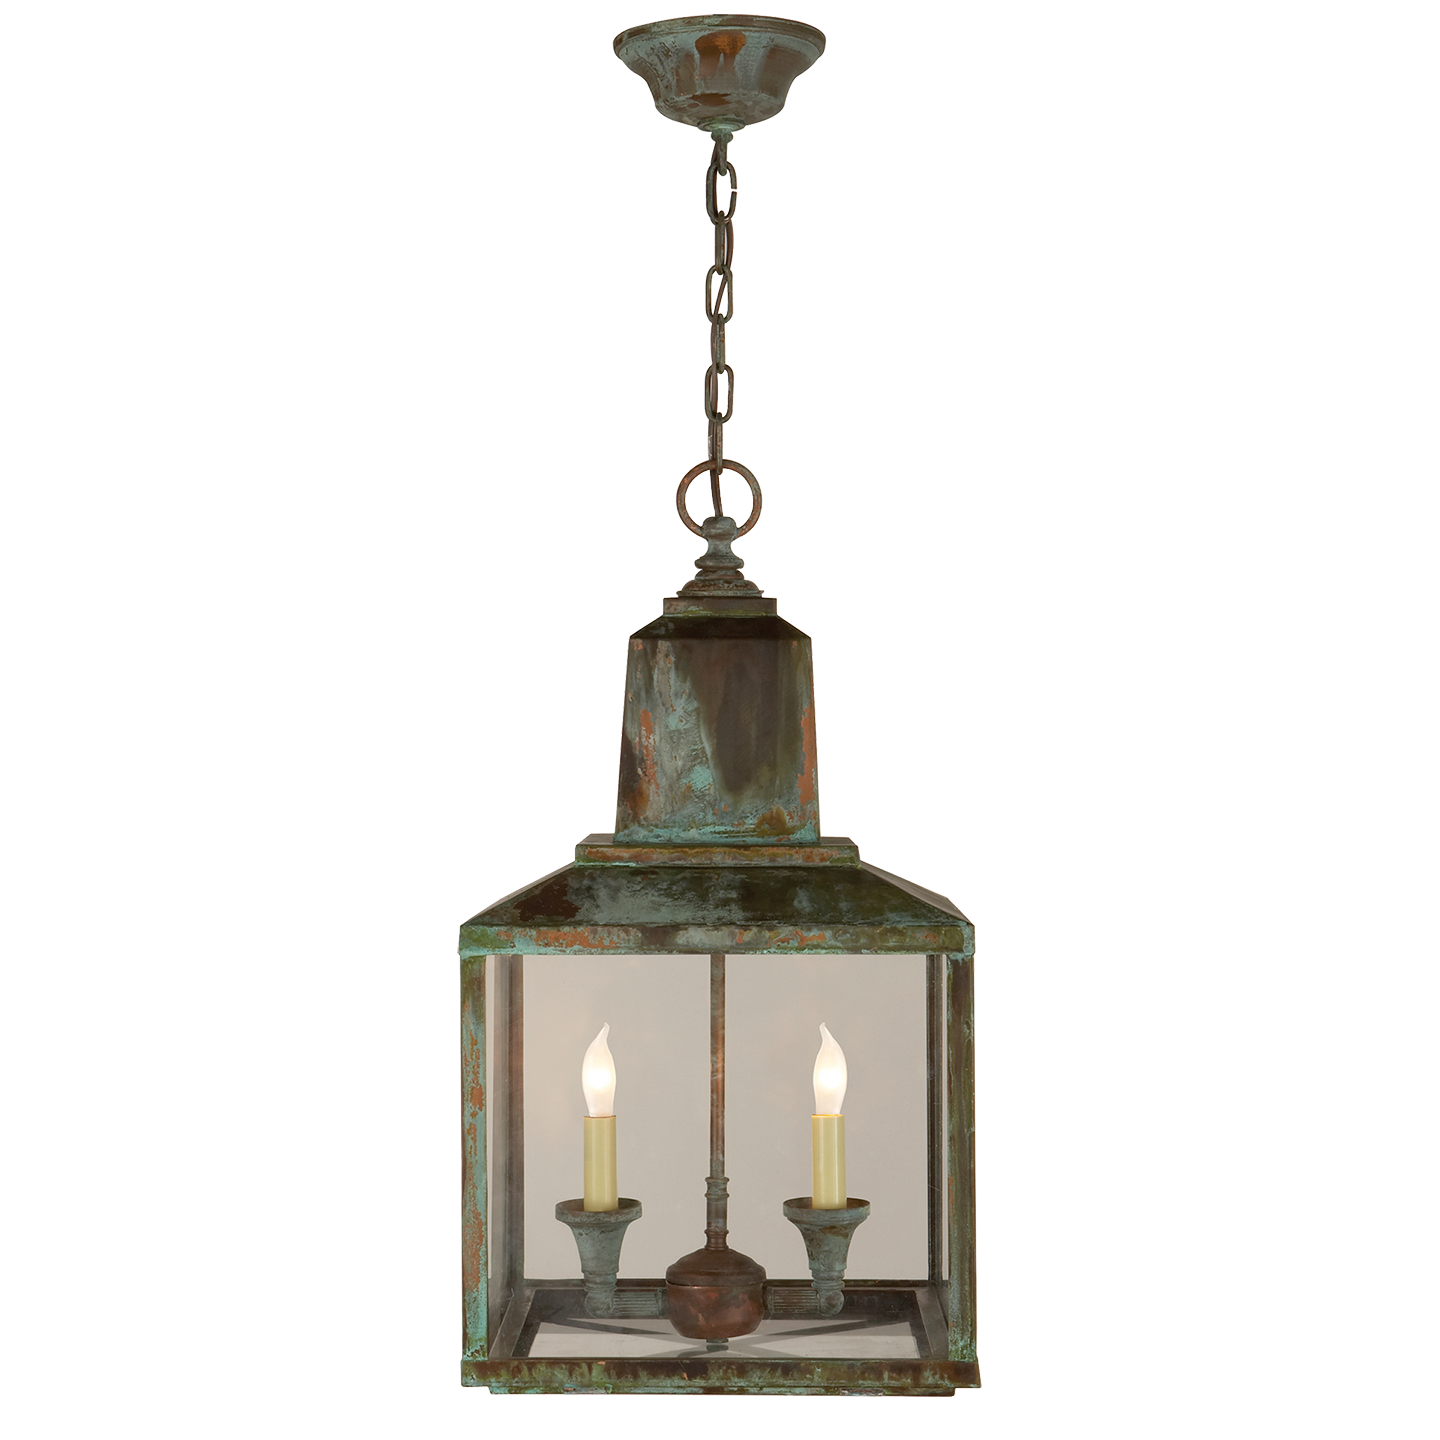 General Information  sc 1 st  Foundry Lighting & Visual Comfort SK 5007VG Suzanne Kasler Casual Brantley Lantern in ... azcodes.com